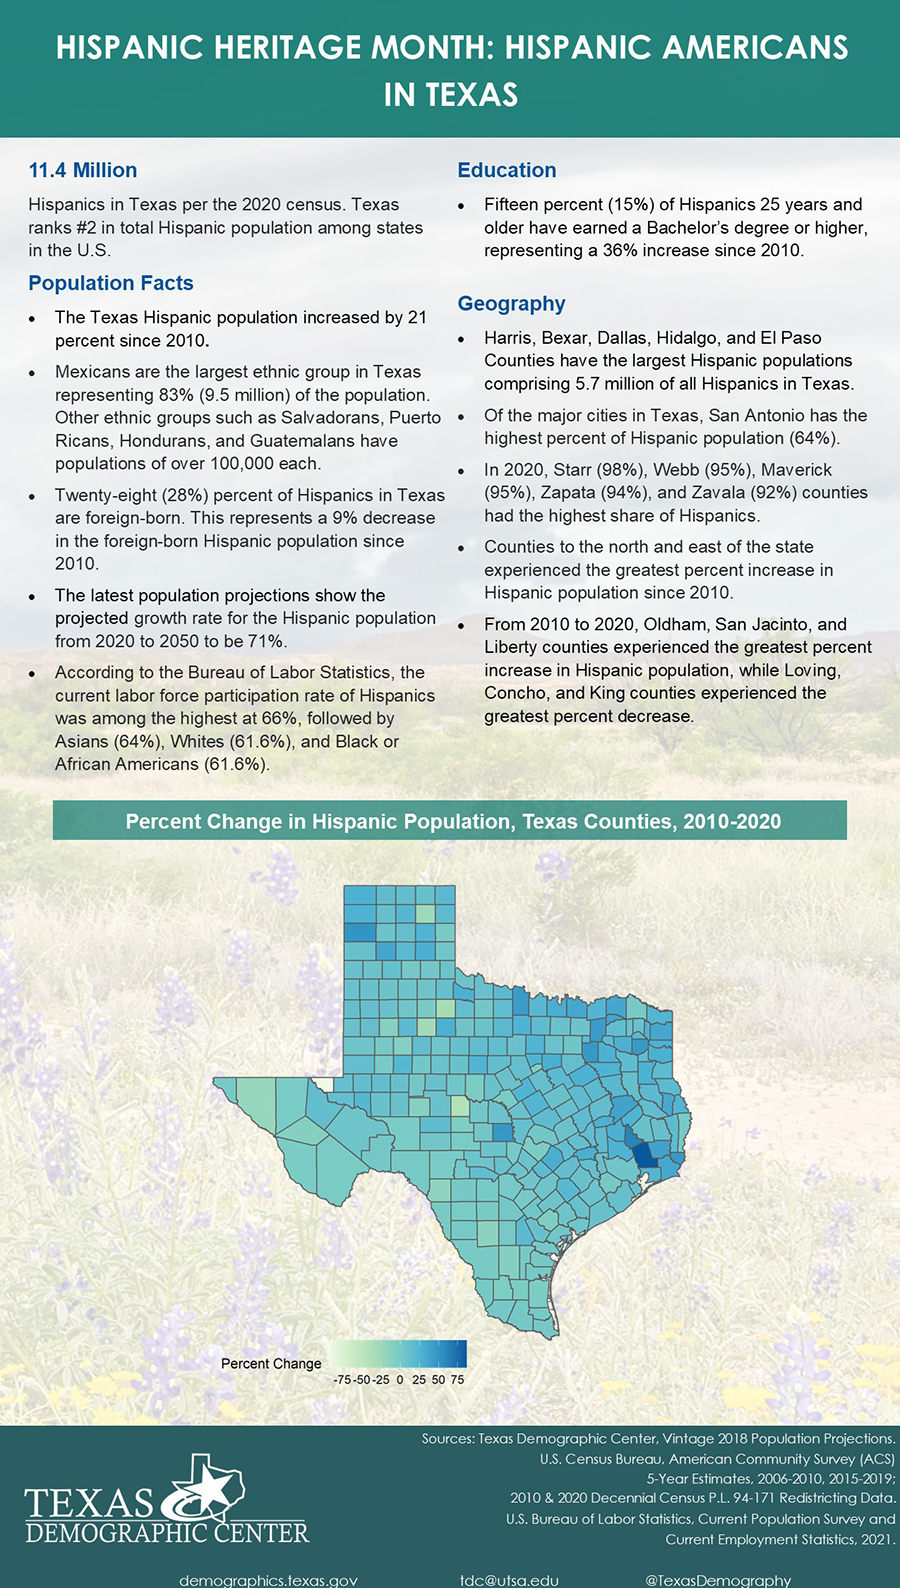 One Page Inforgraphic of Hispanic Heritage Month: Hispanic Americans in Texas